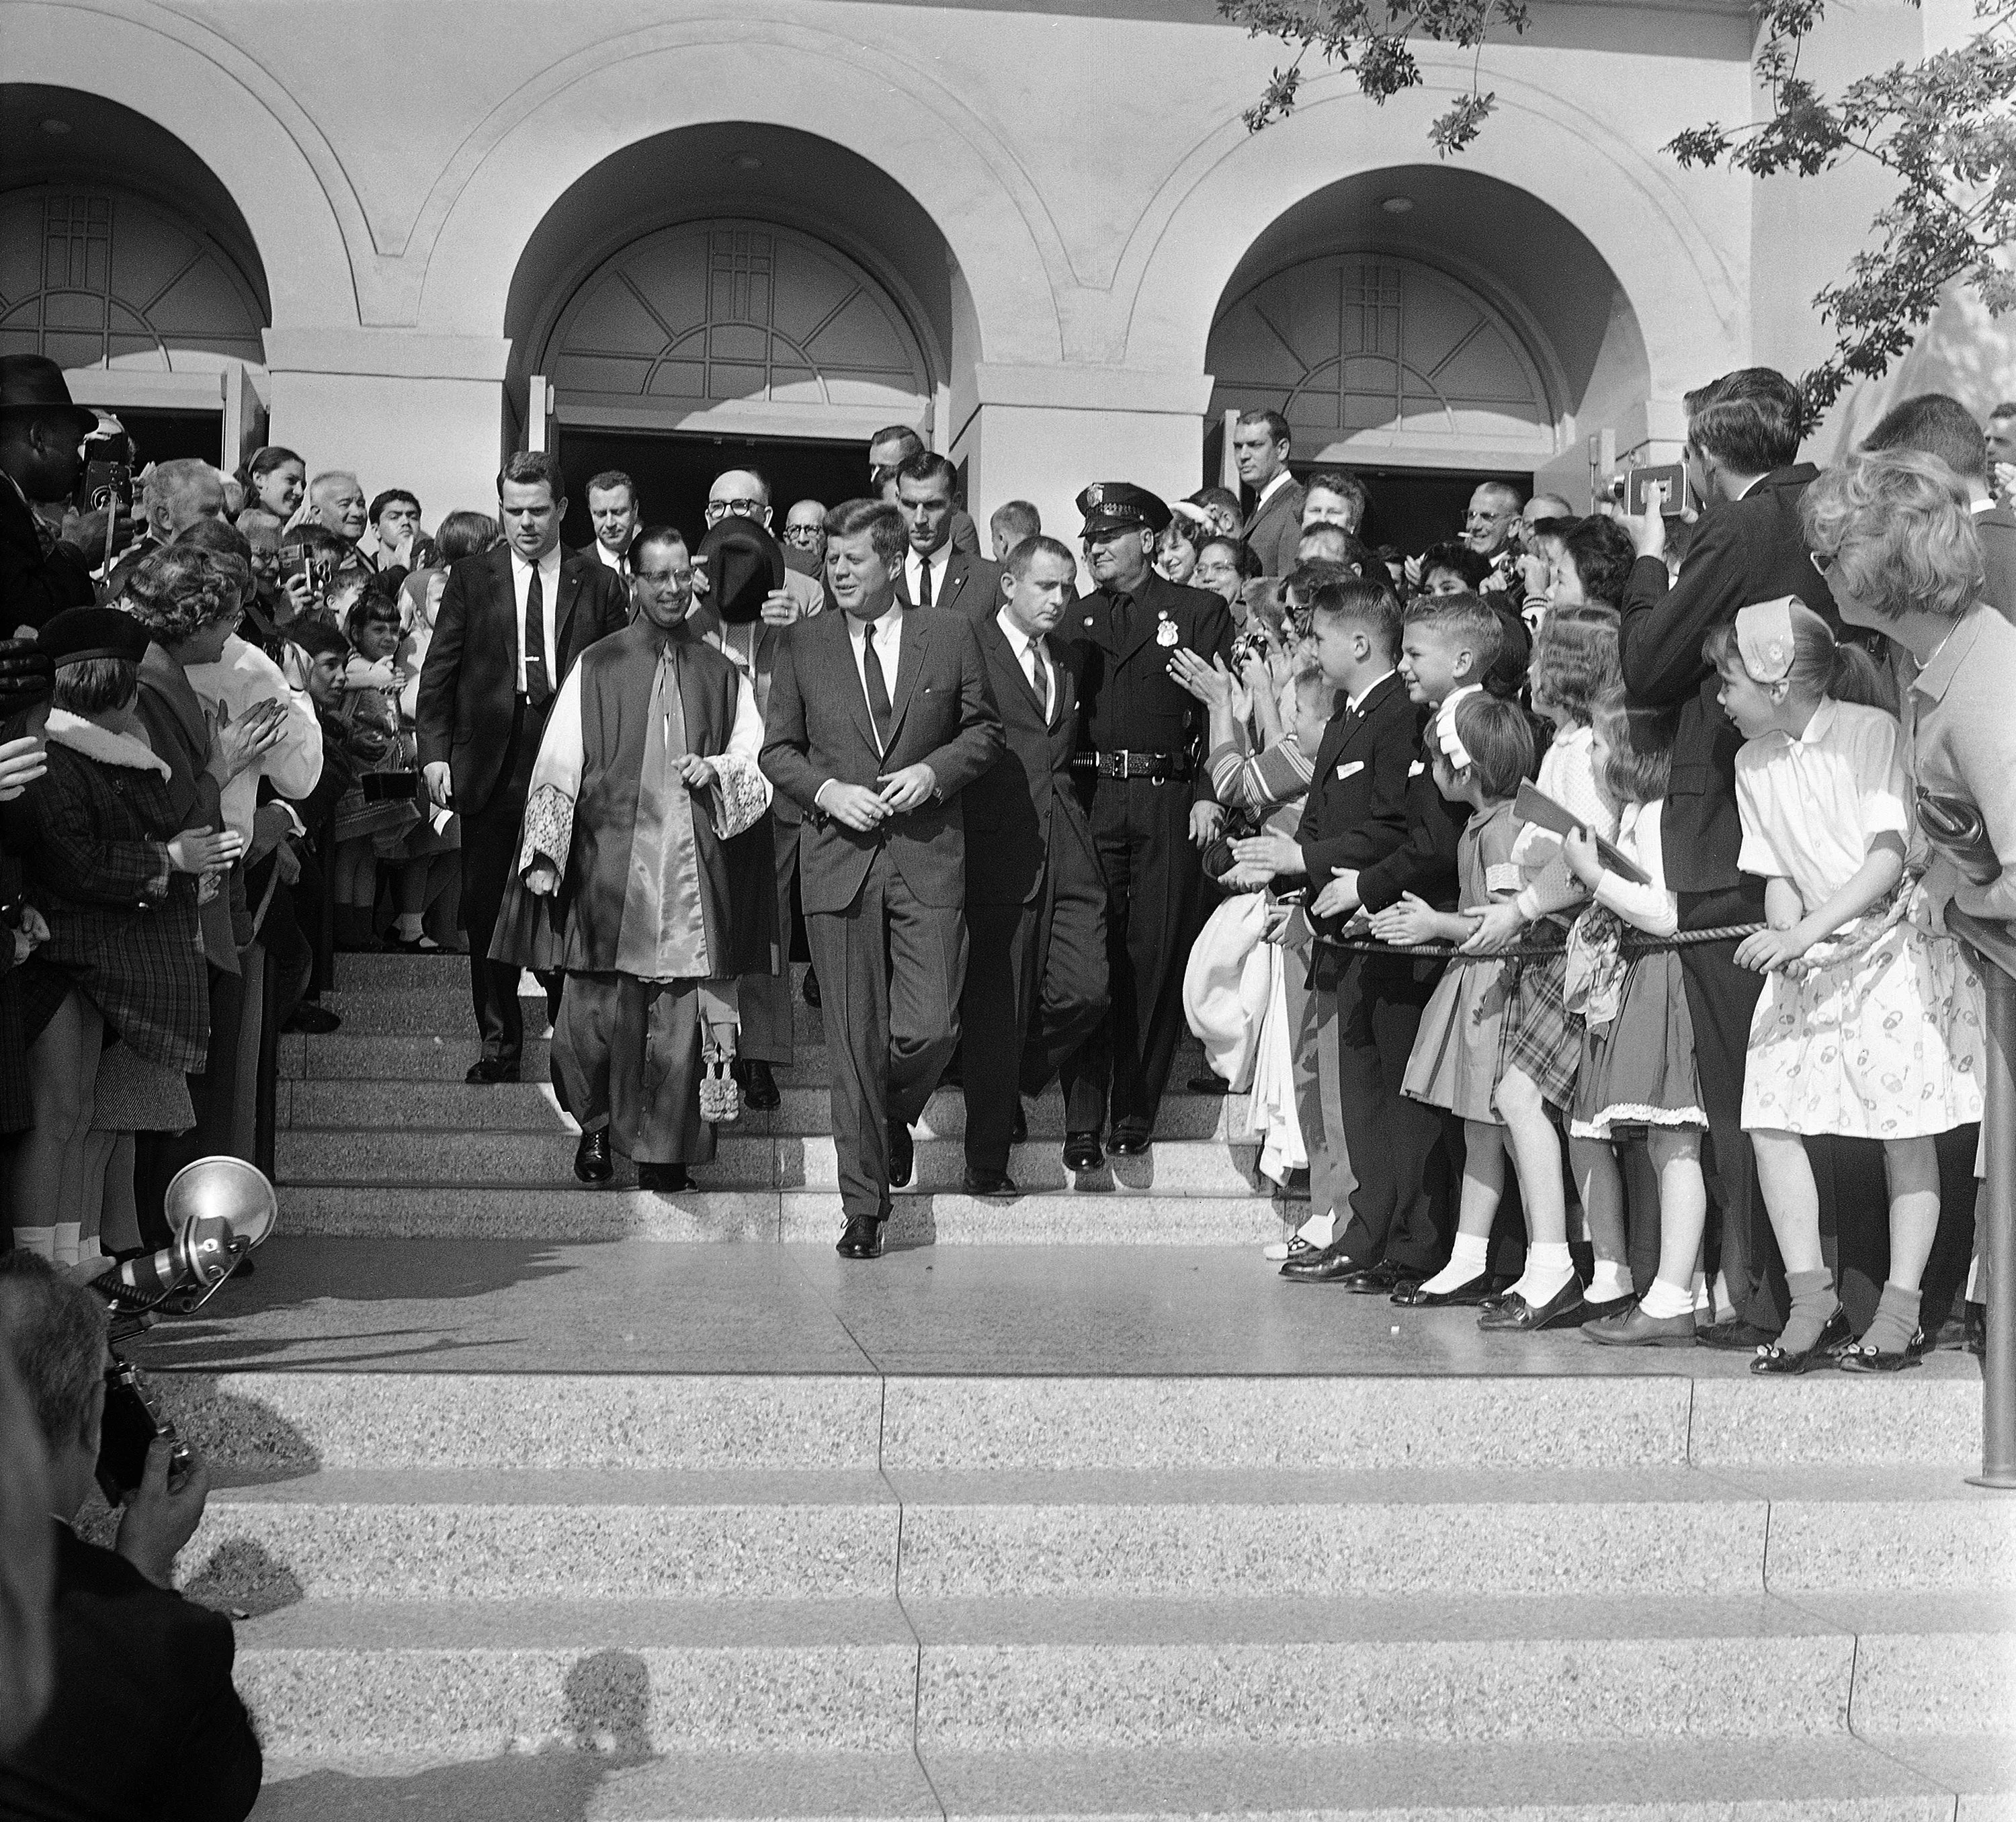 U.S. President John Kennedy leaves the Church of the Good Shepherd in Beverly Hills, California, on Nov. 19, 1961 to the applause of parishioners gathered in front to watch him after he attended Mass. Escorting him to his limousine is the very Rev. Msgr. Daniel F. Sullivan, pastor of the church. (AP Photo/HF)